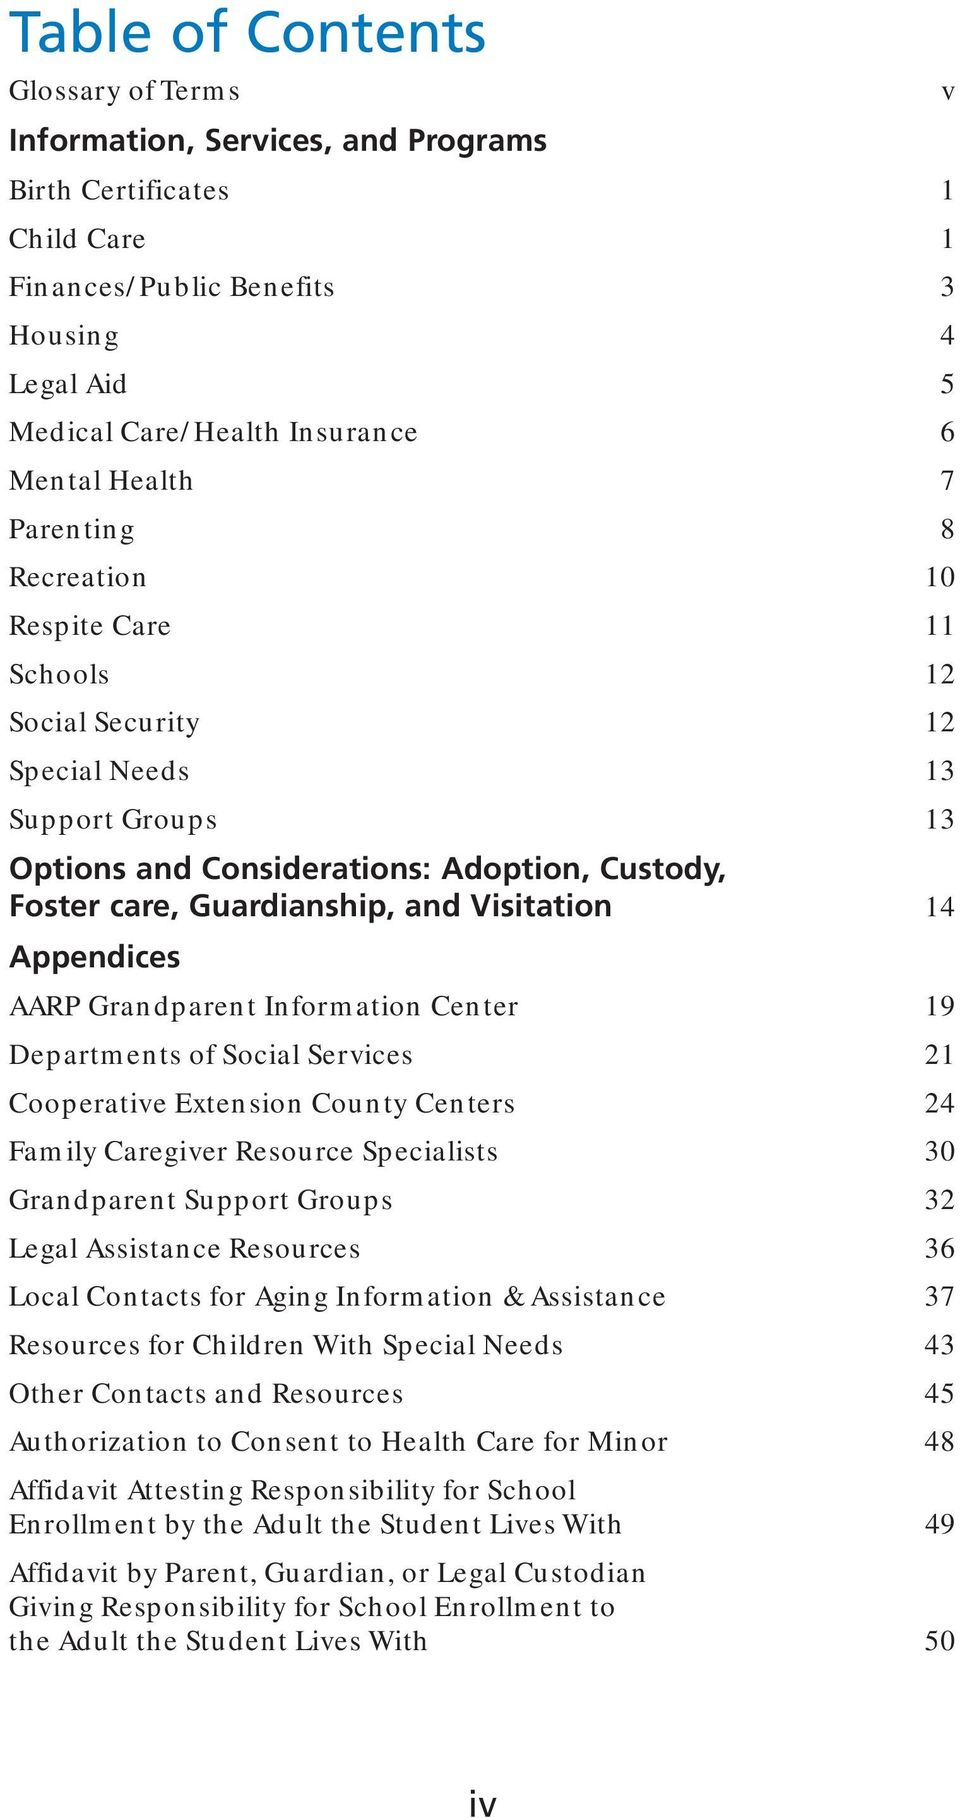 Visitation 14 Appendices AARP Grandparent Information Center 19 Departments of Social Services 21 Cooperative Extension County Centers 24 Family Caregiver Resource Specialists 30 Grandparent Support